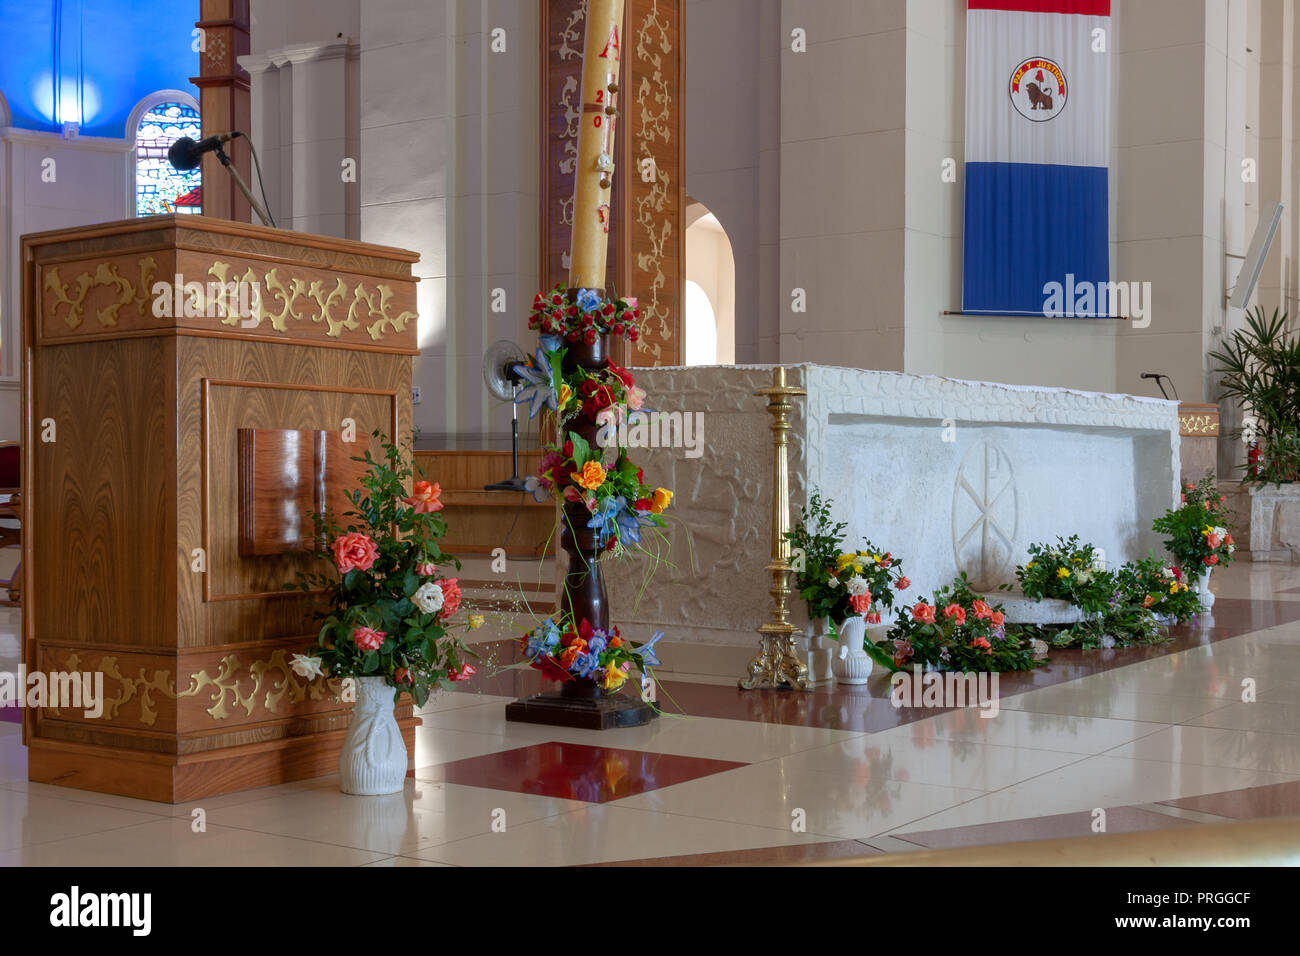 Lectern and altar, Catedral Basilica Nuestra Senora de los Milagros (Cathedral Basilica of Our Lady of Miracles), catholic church in Caacupe, Paraguay - Stock Image